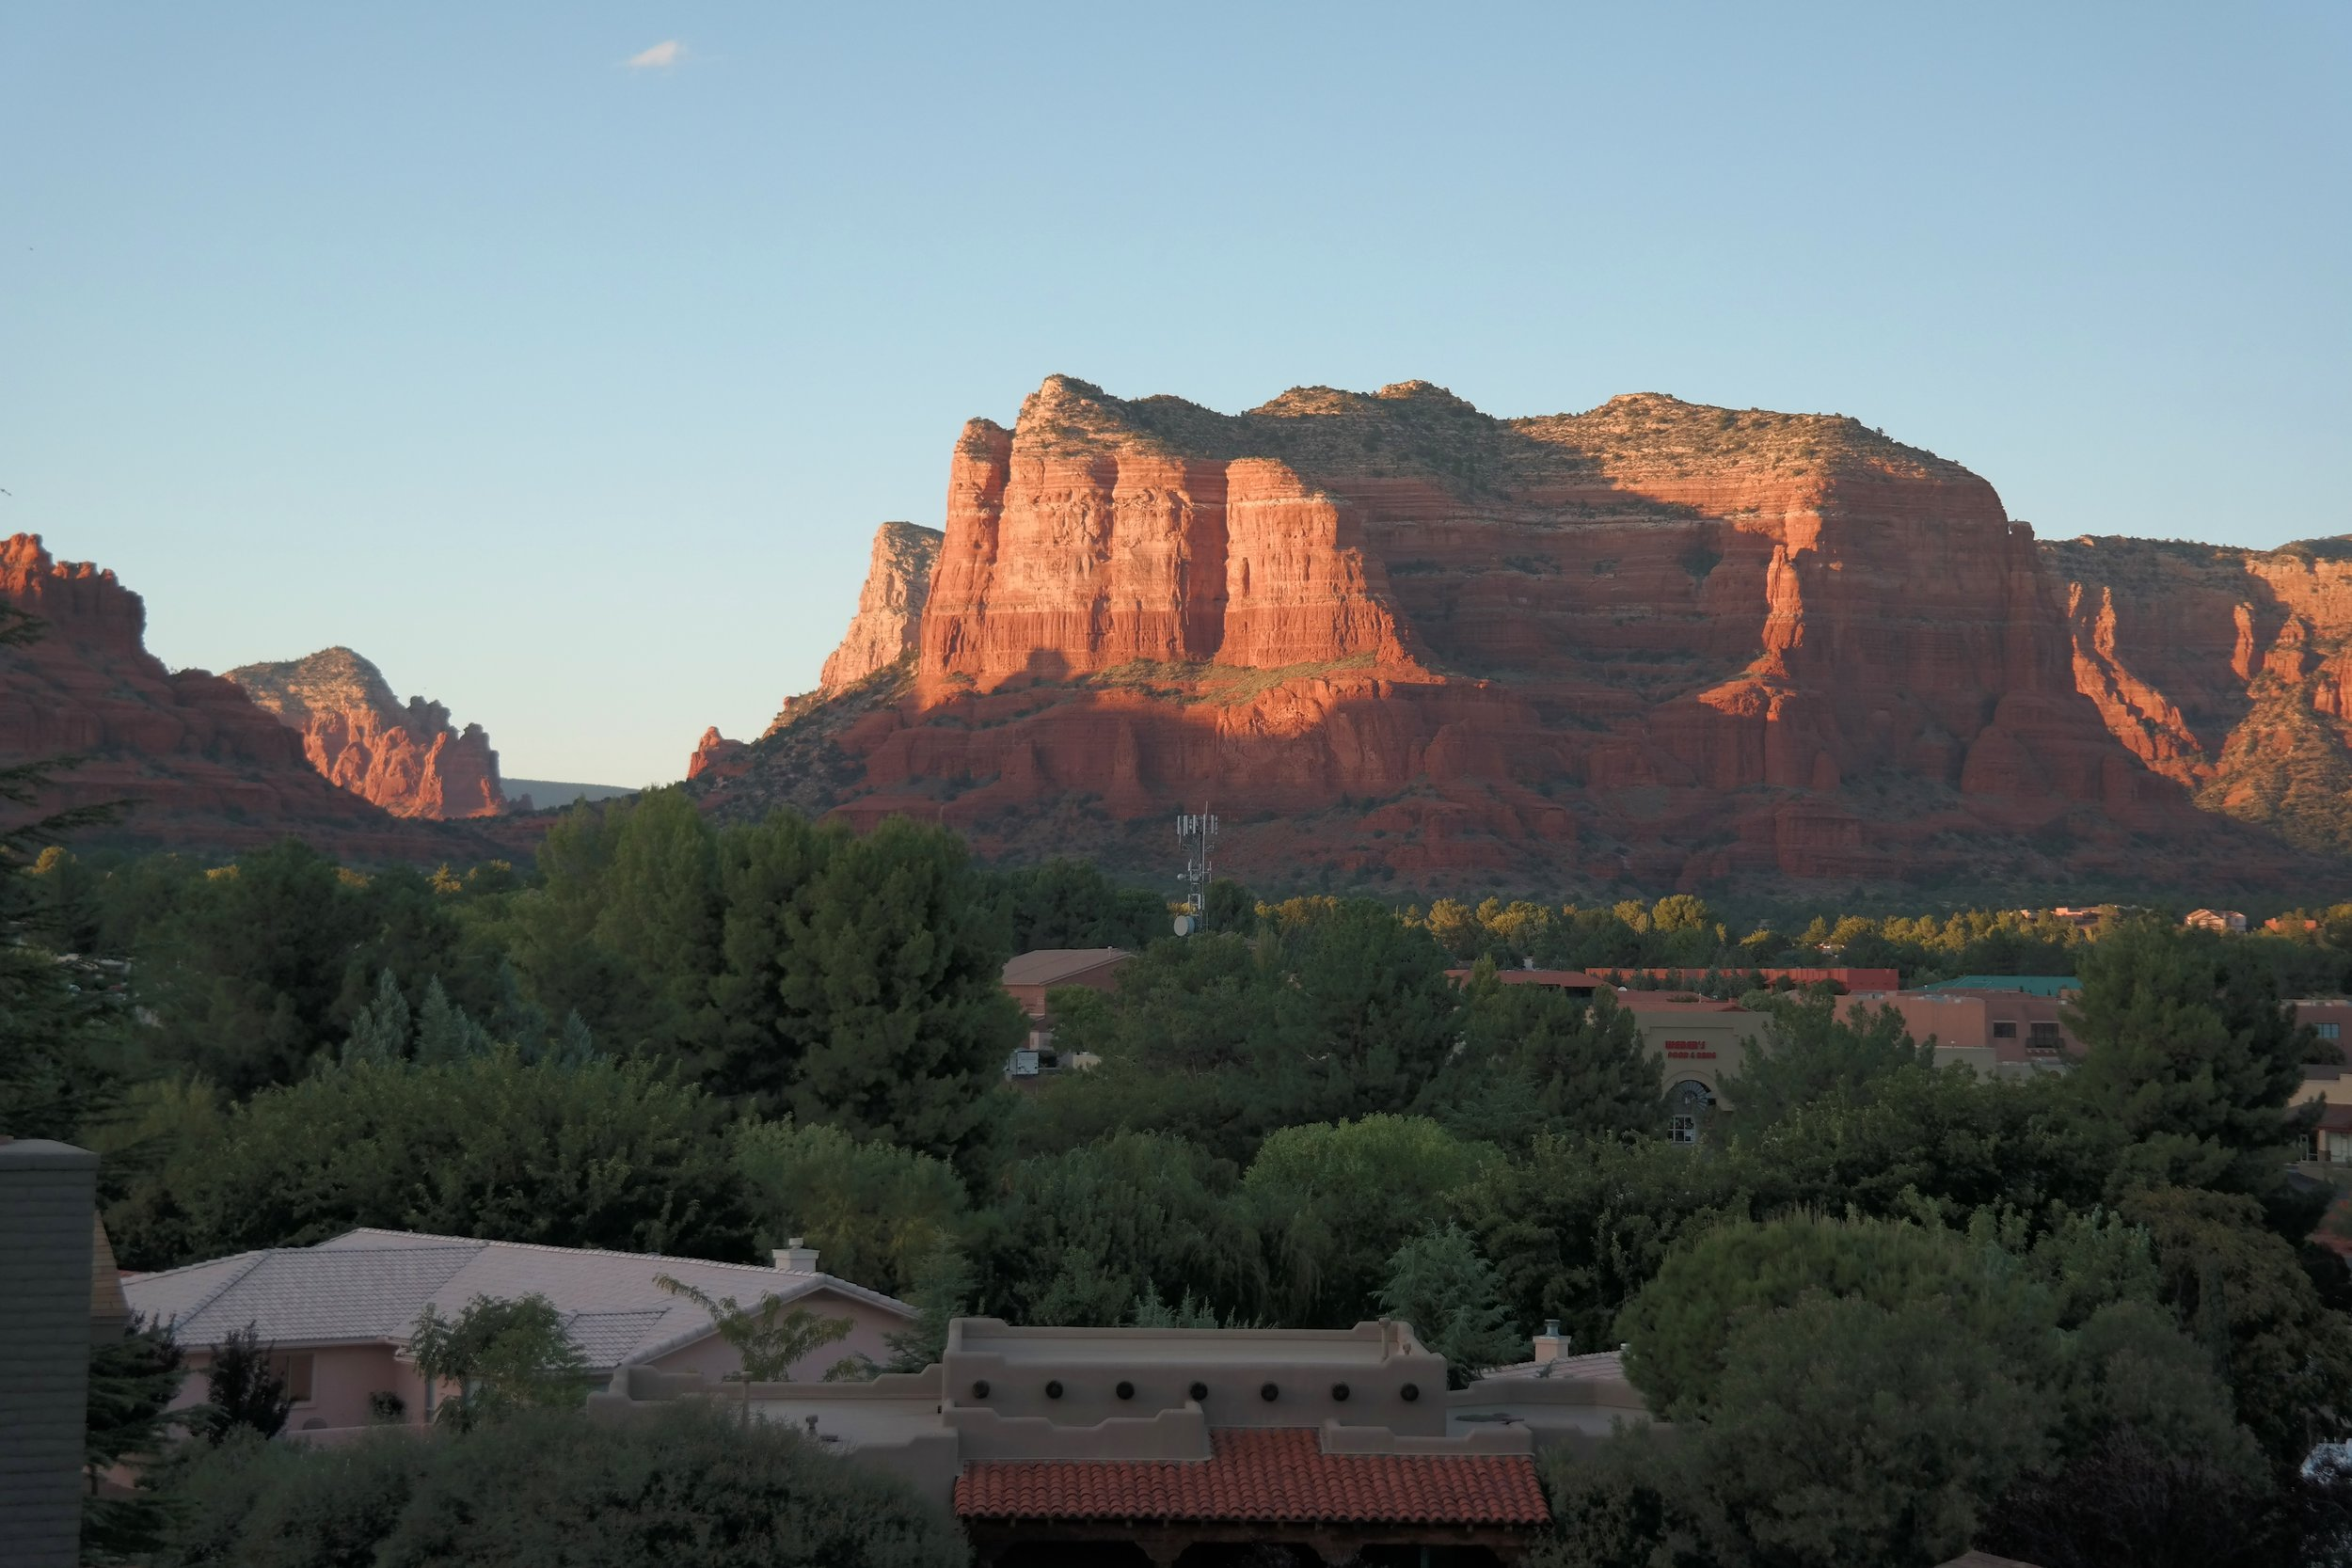 The view from the patio of our suite at Hilton Sedona at Bell Rock as the sun sets